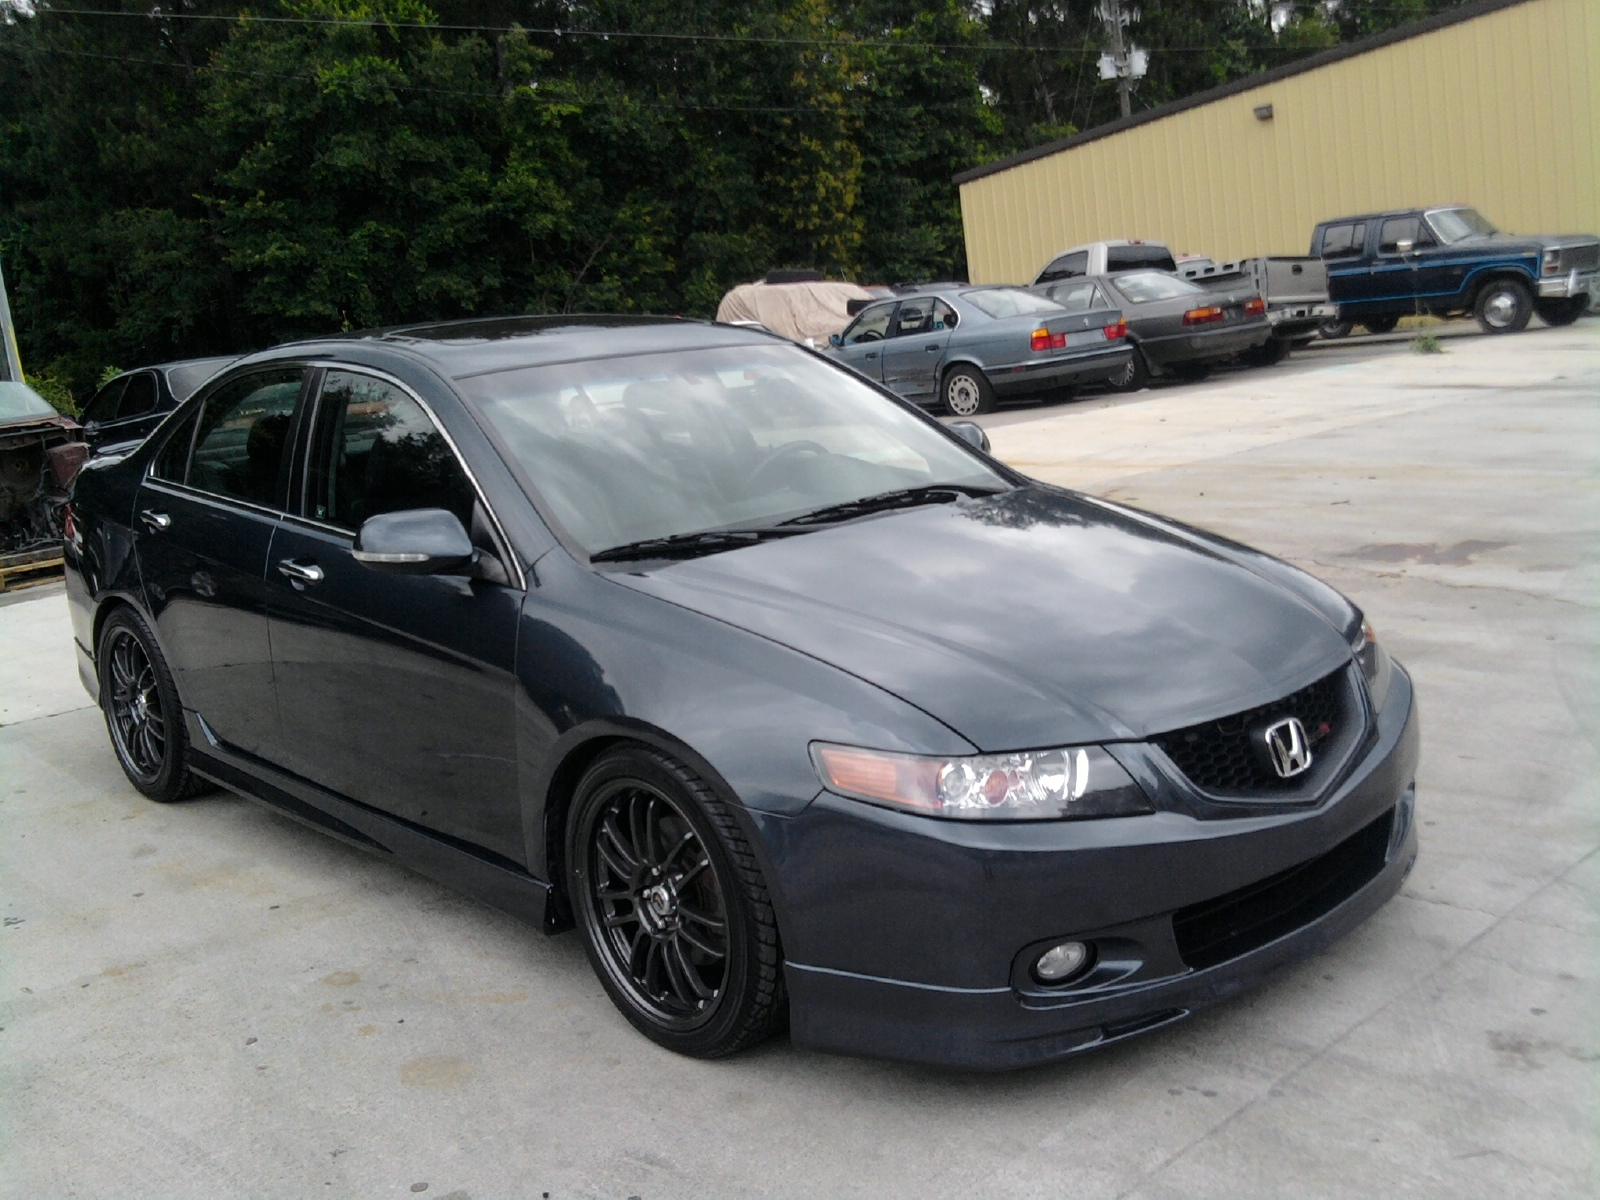 Craigcreationz 2004 Acura Tsxsedan 4d Specs Photos Modification Info At Cardomain